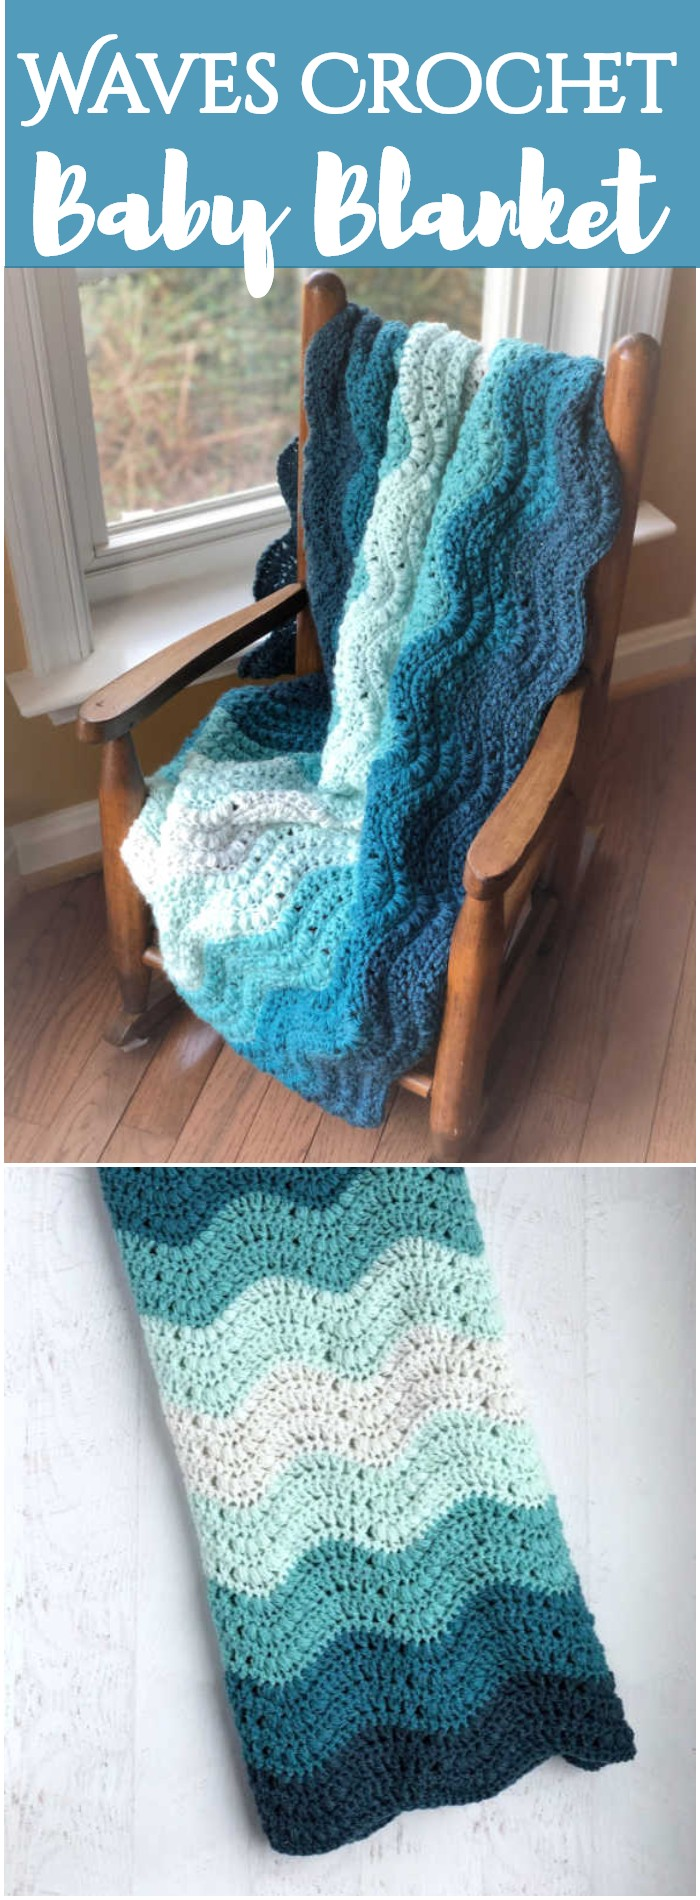 Waves Crochet Baby Blanket Free Crochet Blanket Patterns To Try This Season free crochet blanket patterns | free crochet blanket patterns for adults | free crochet blanket patterns easy | free crochet blanket